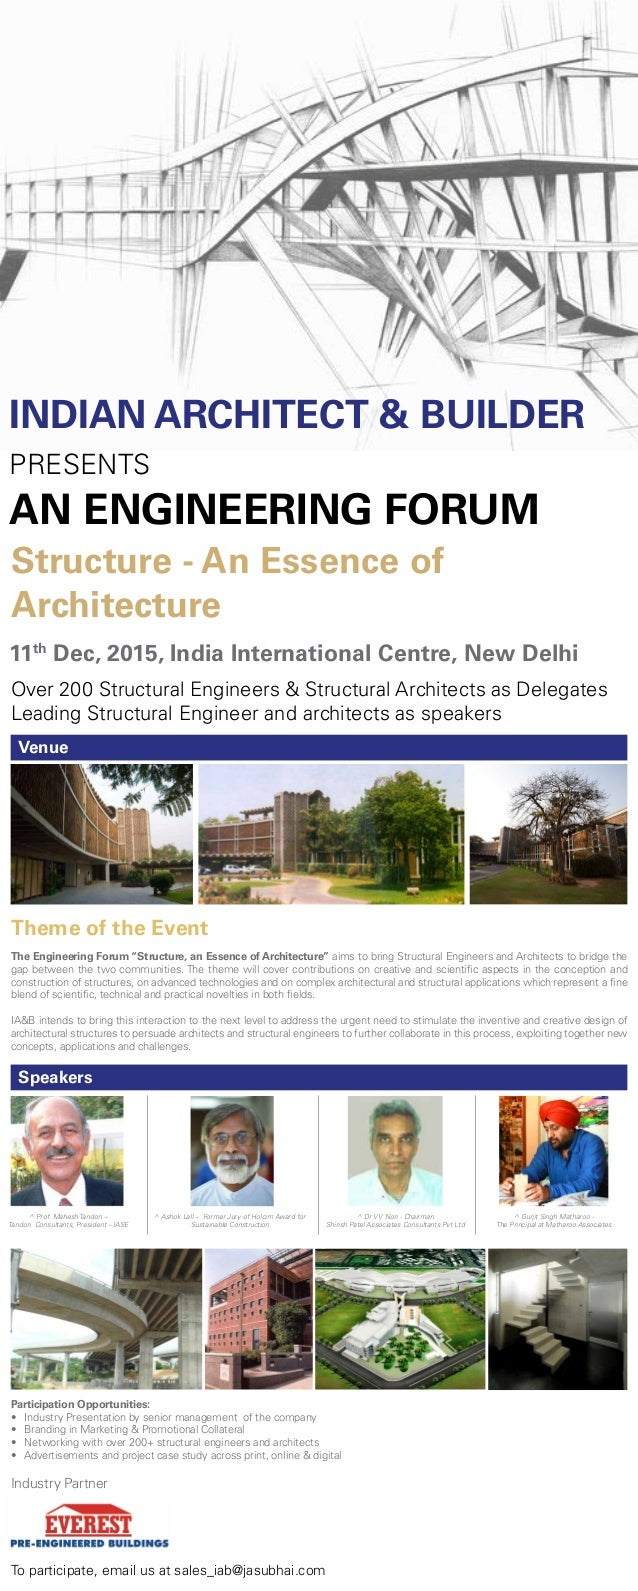 INDIAN ARCHITECT & BUILDER PRESENTS AN ENGINEERING FORUM Structure - An Essence of Architecture Theme of the Event The Eng...